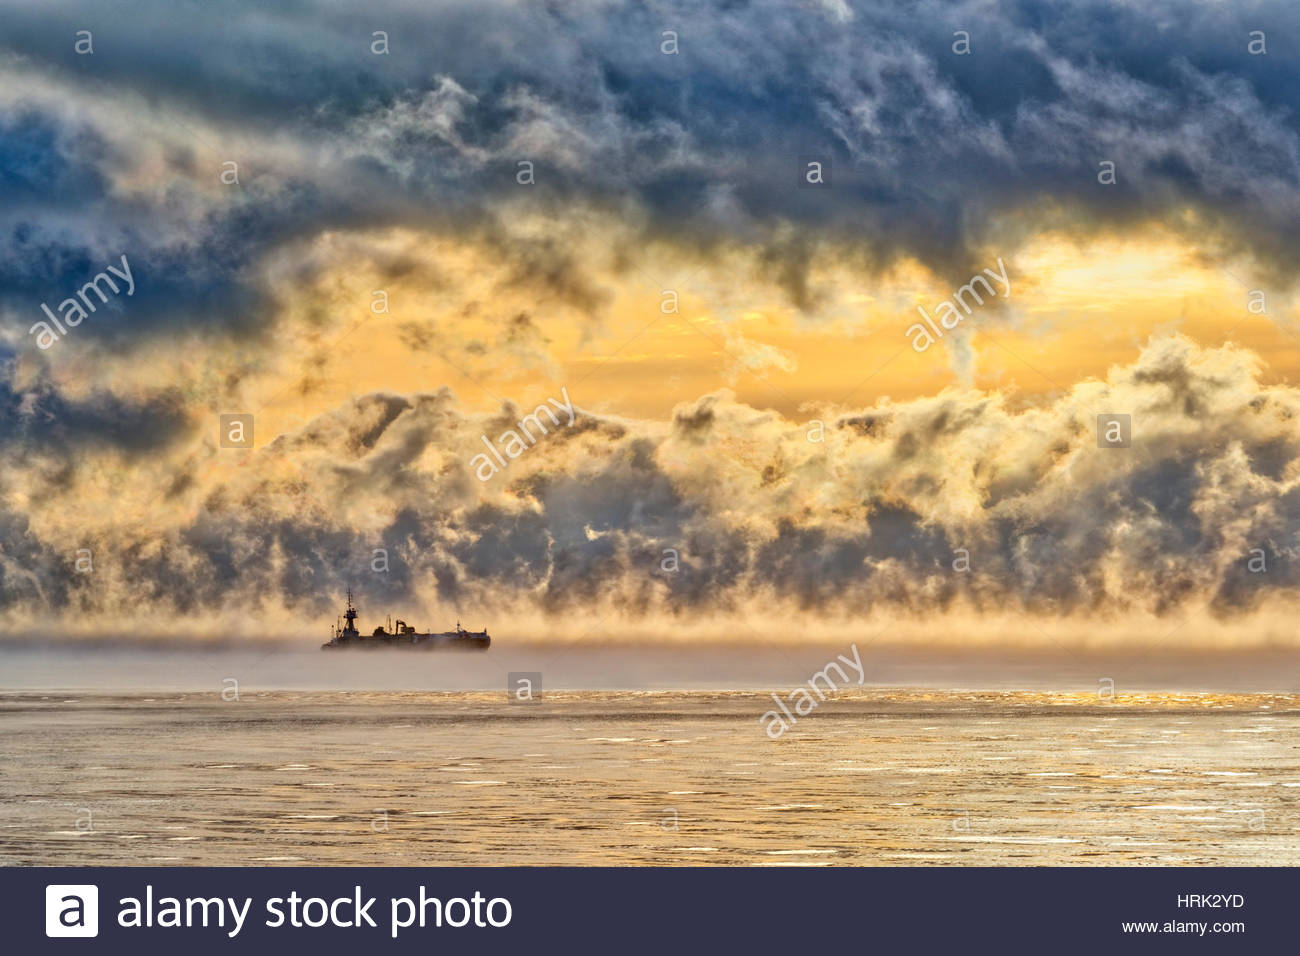 a-boat-silhouetted-against-a-dramatic-su